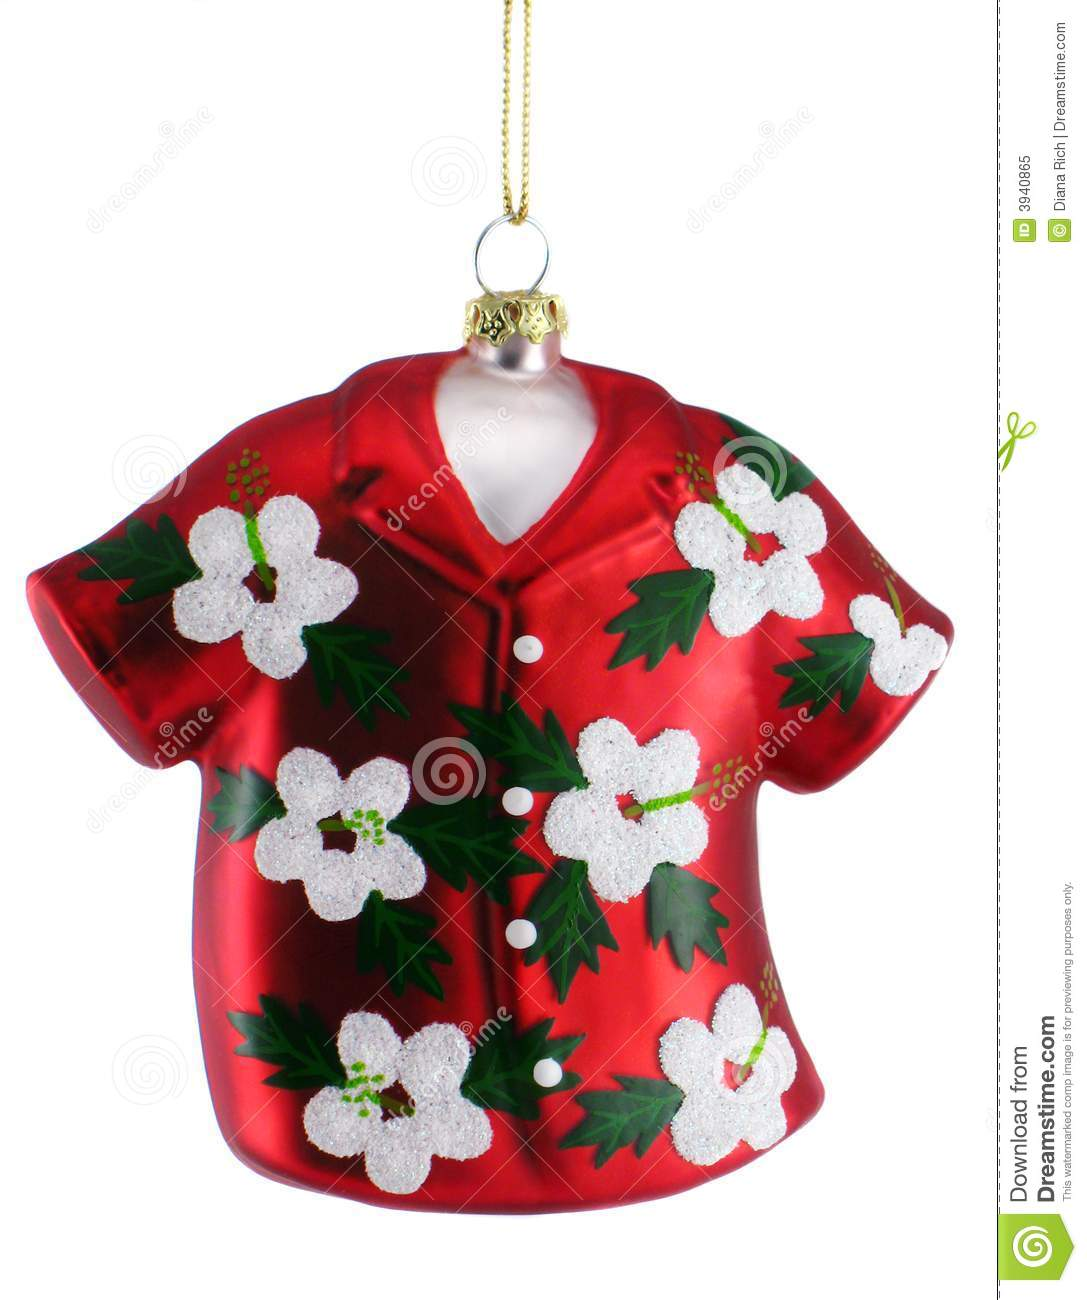 hawaiian shirt christmas ornament